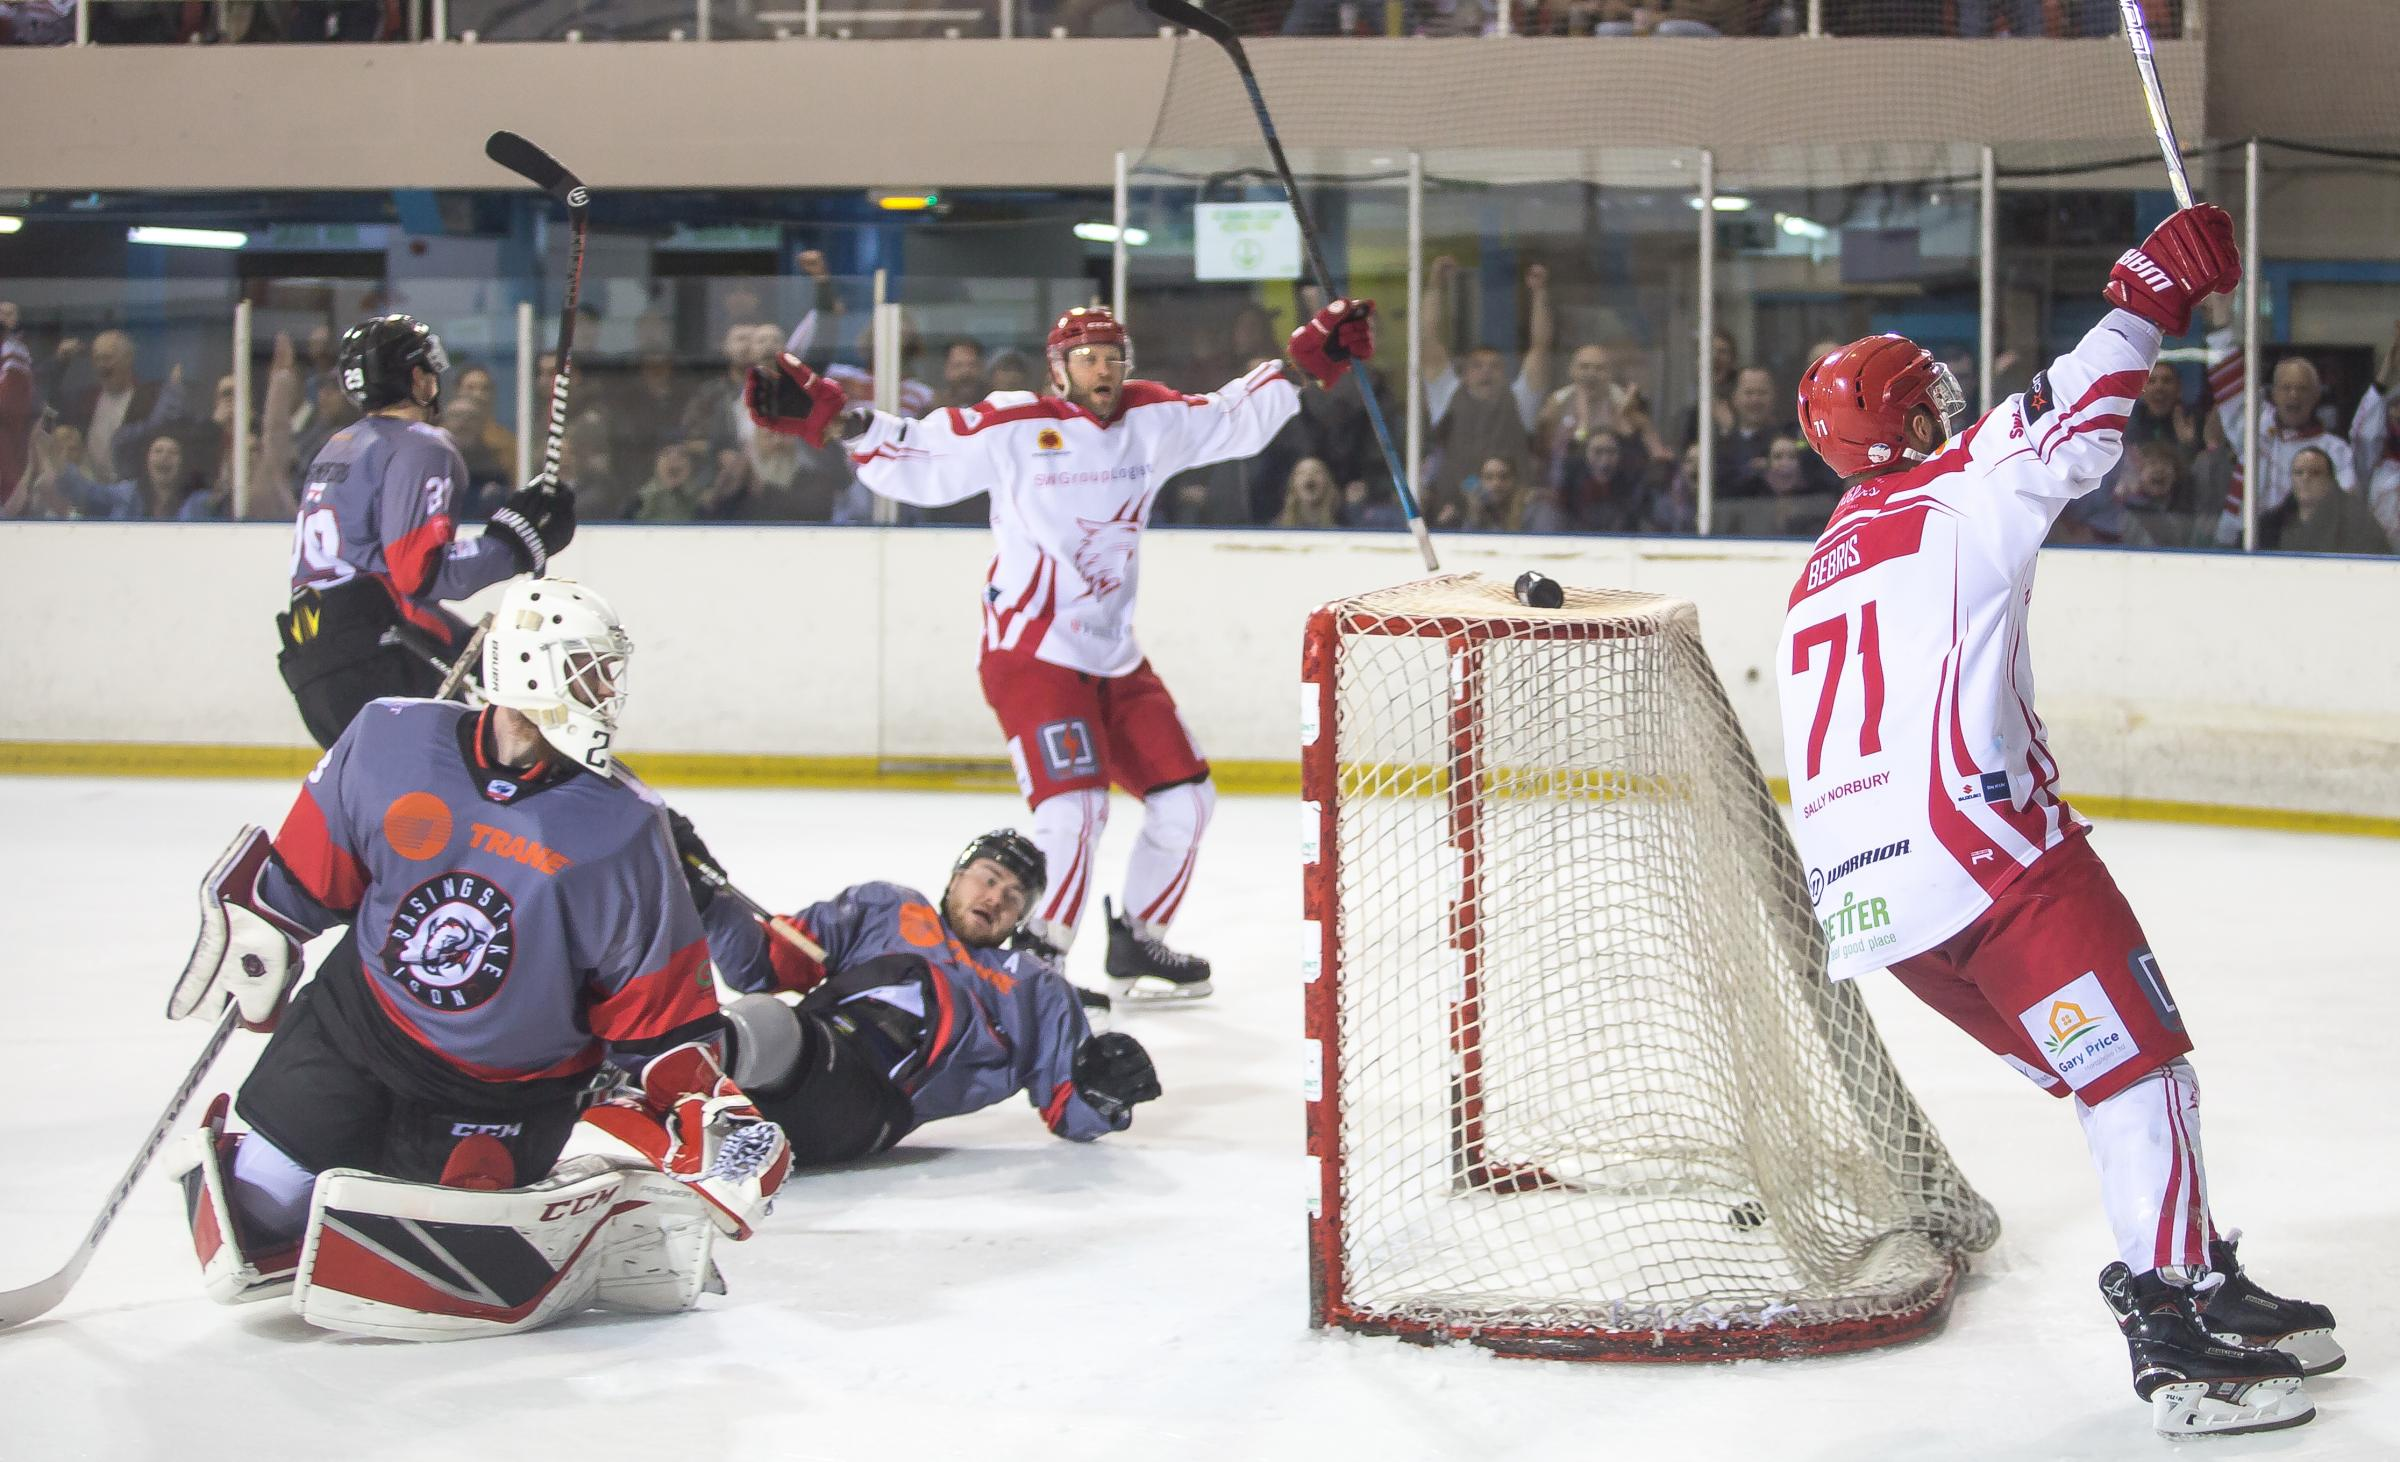 Swindon Wildcats (white) celebrate a goal against Basingstoke Bison on Saturday night. PICTURE: RYAN AINSCOW